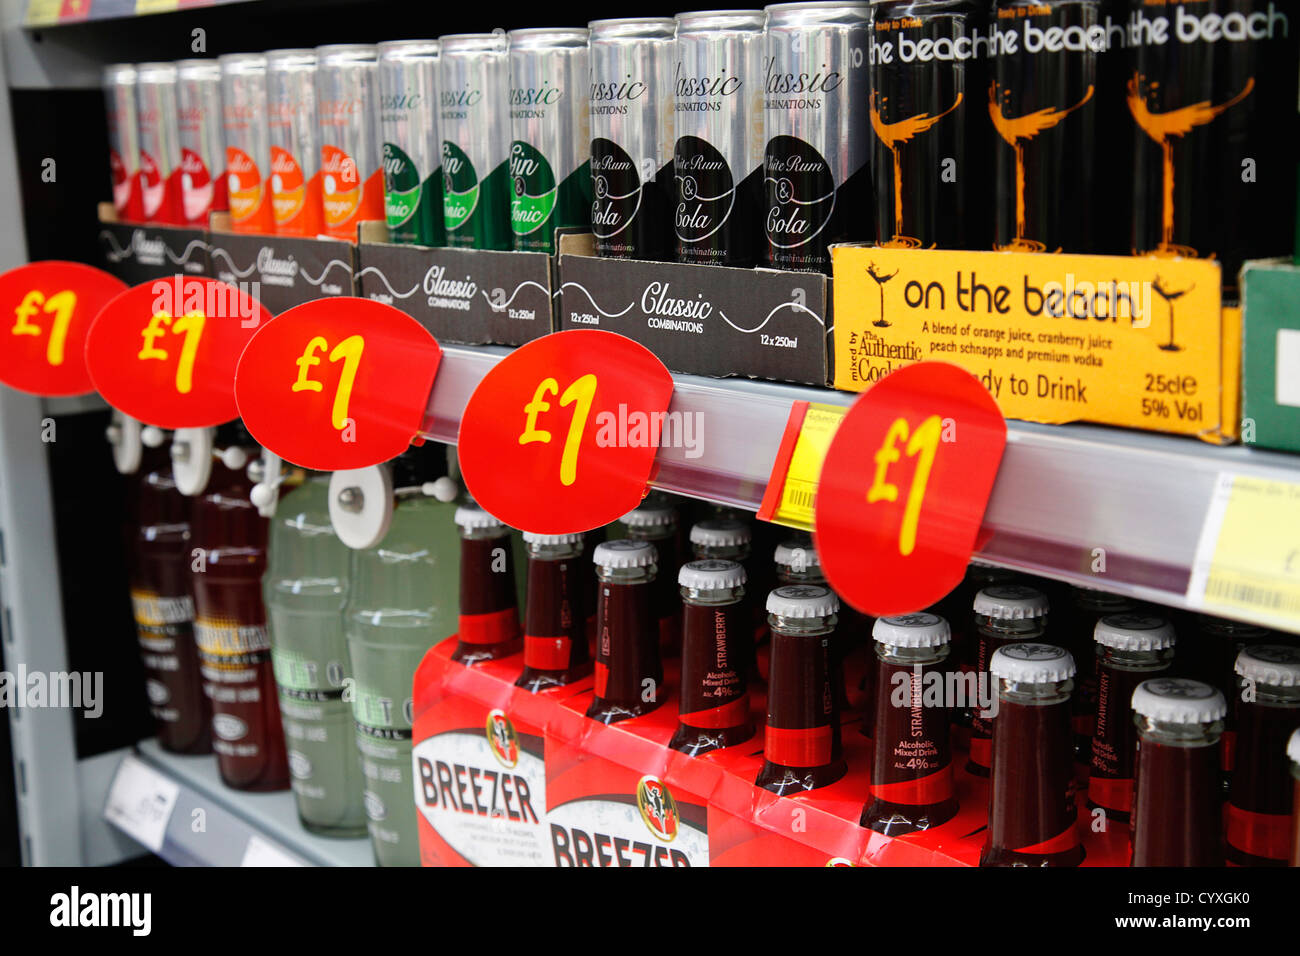 Shopping, Supermarket, Drinks, Cheap Alcoholic drinks on sale for one pound. - Stock Image